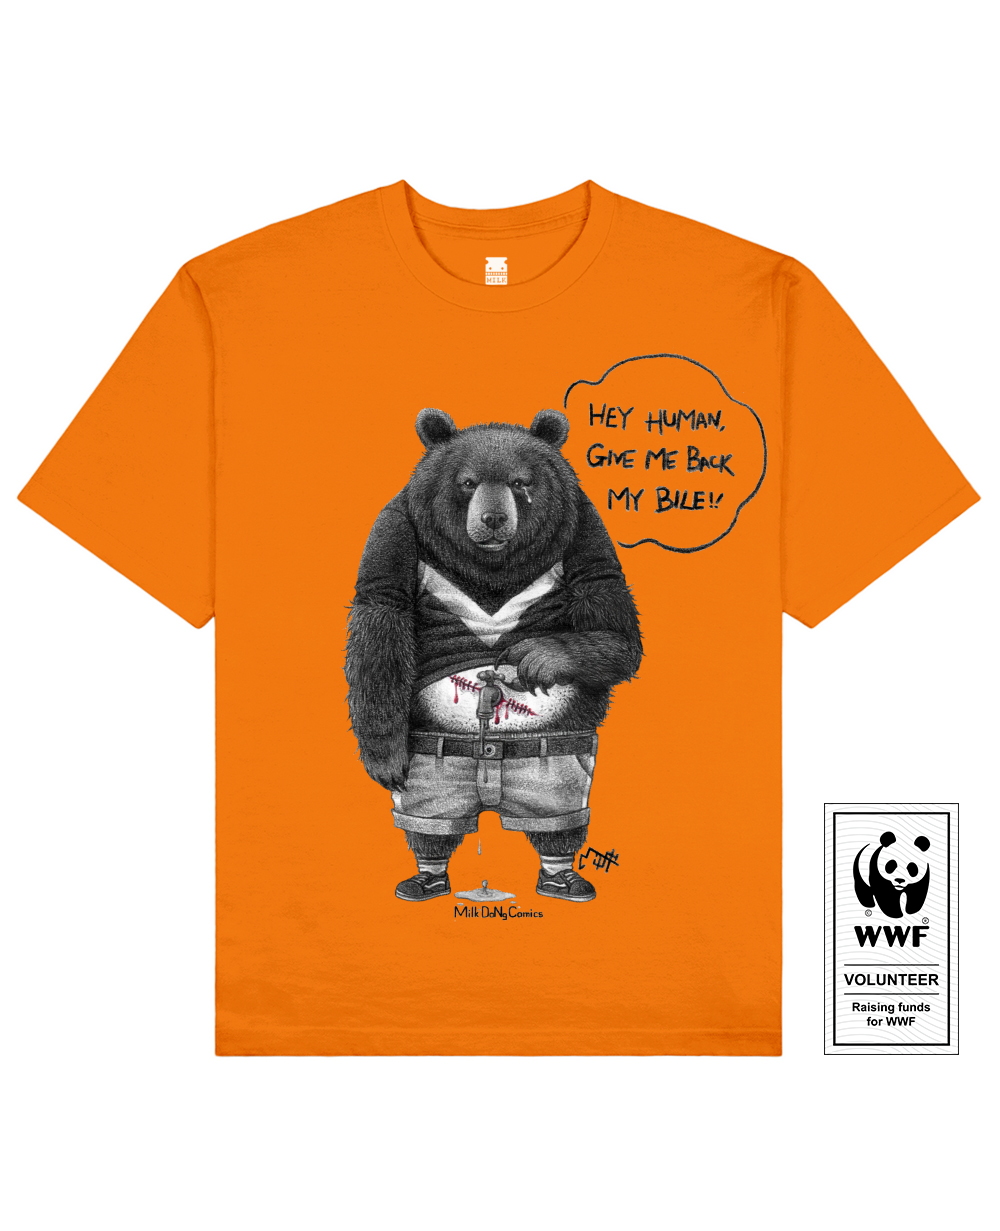 BILELESS BEAR Printed T-Shirt in Orange - T-Shirts - Milk DoNg Comics - BRANMA